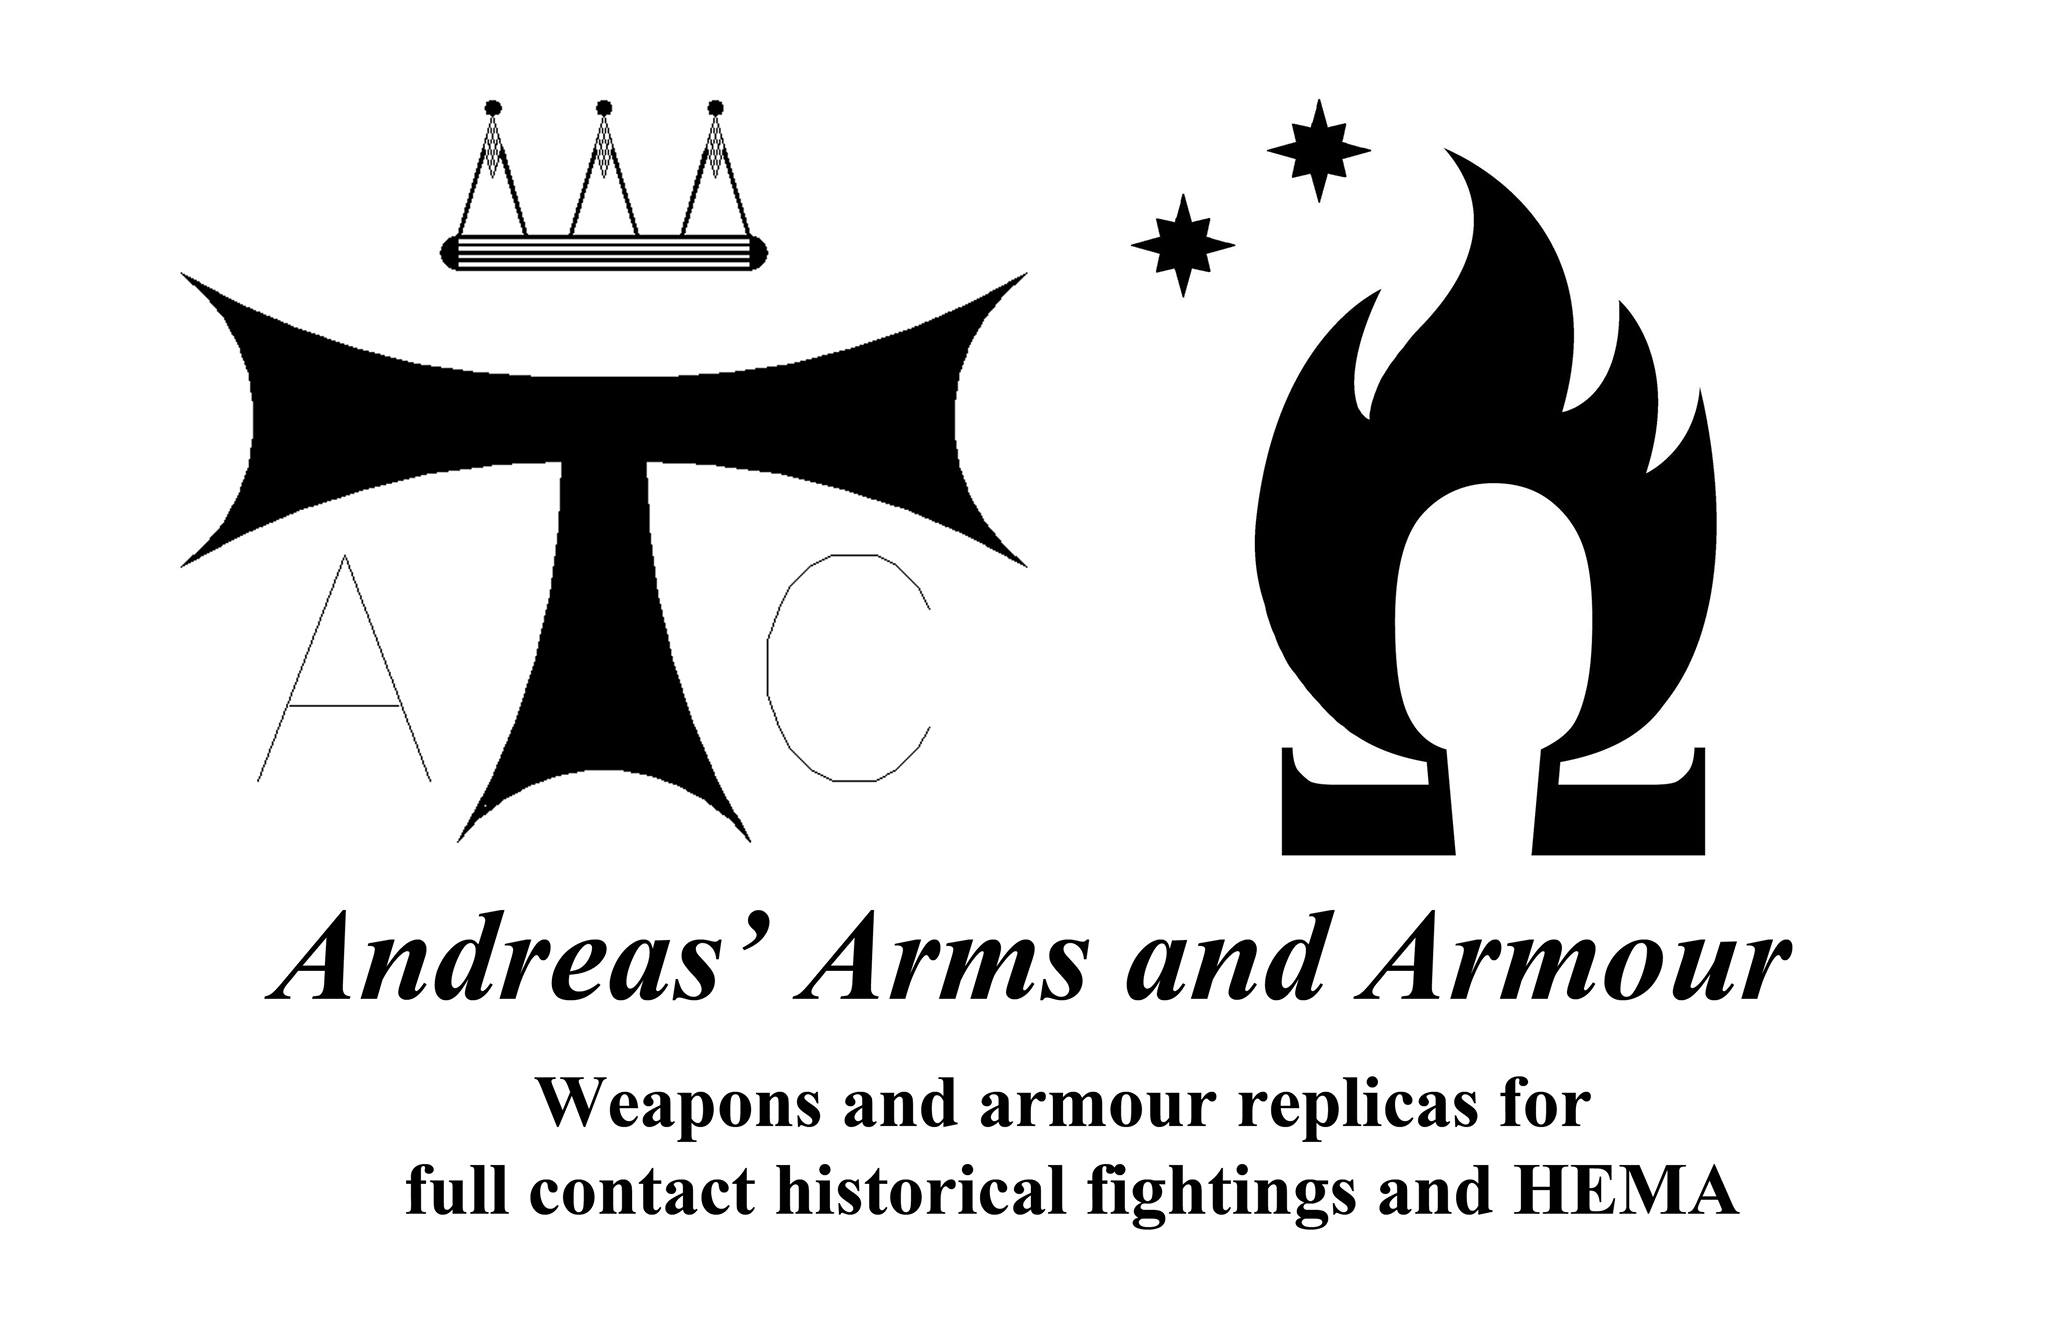 Andreas Arms and Armours